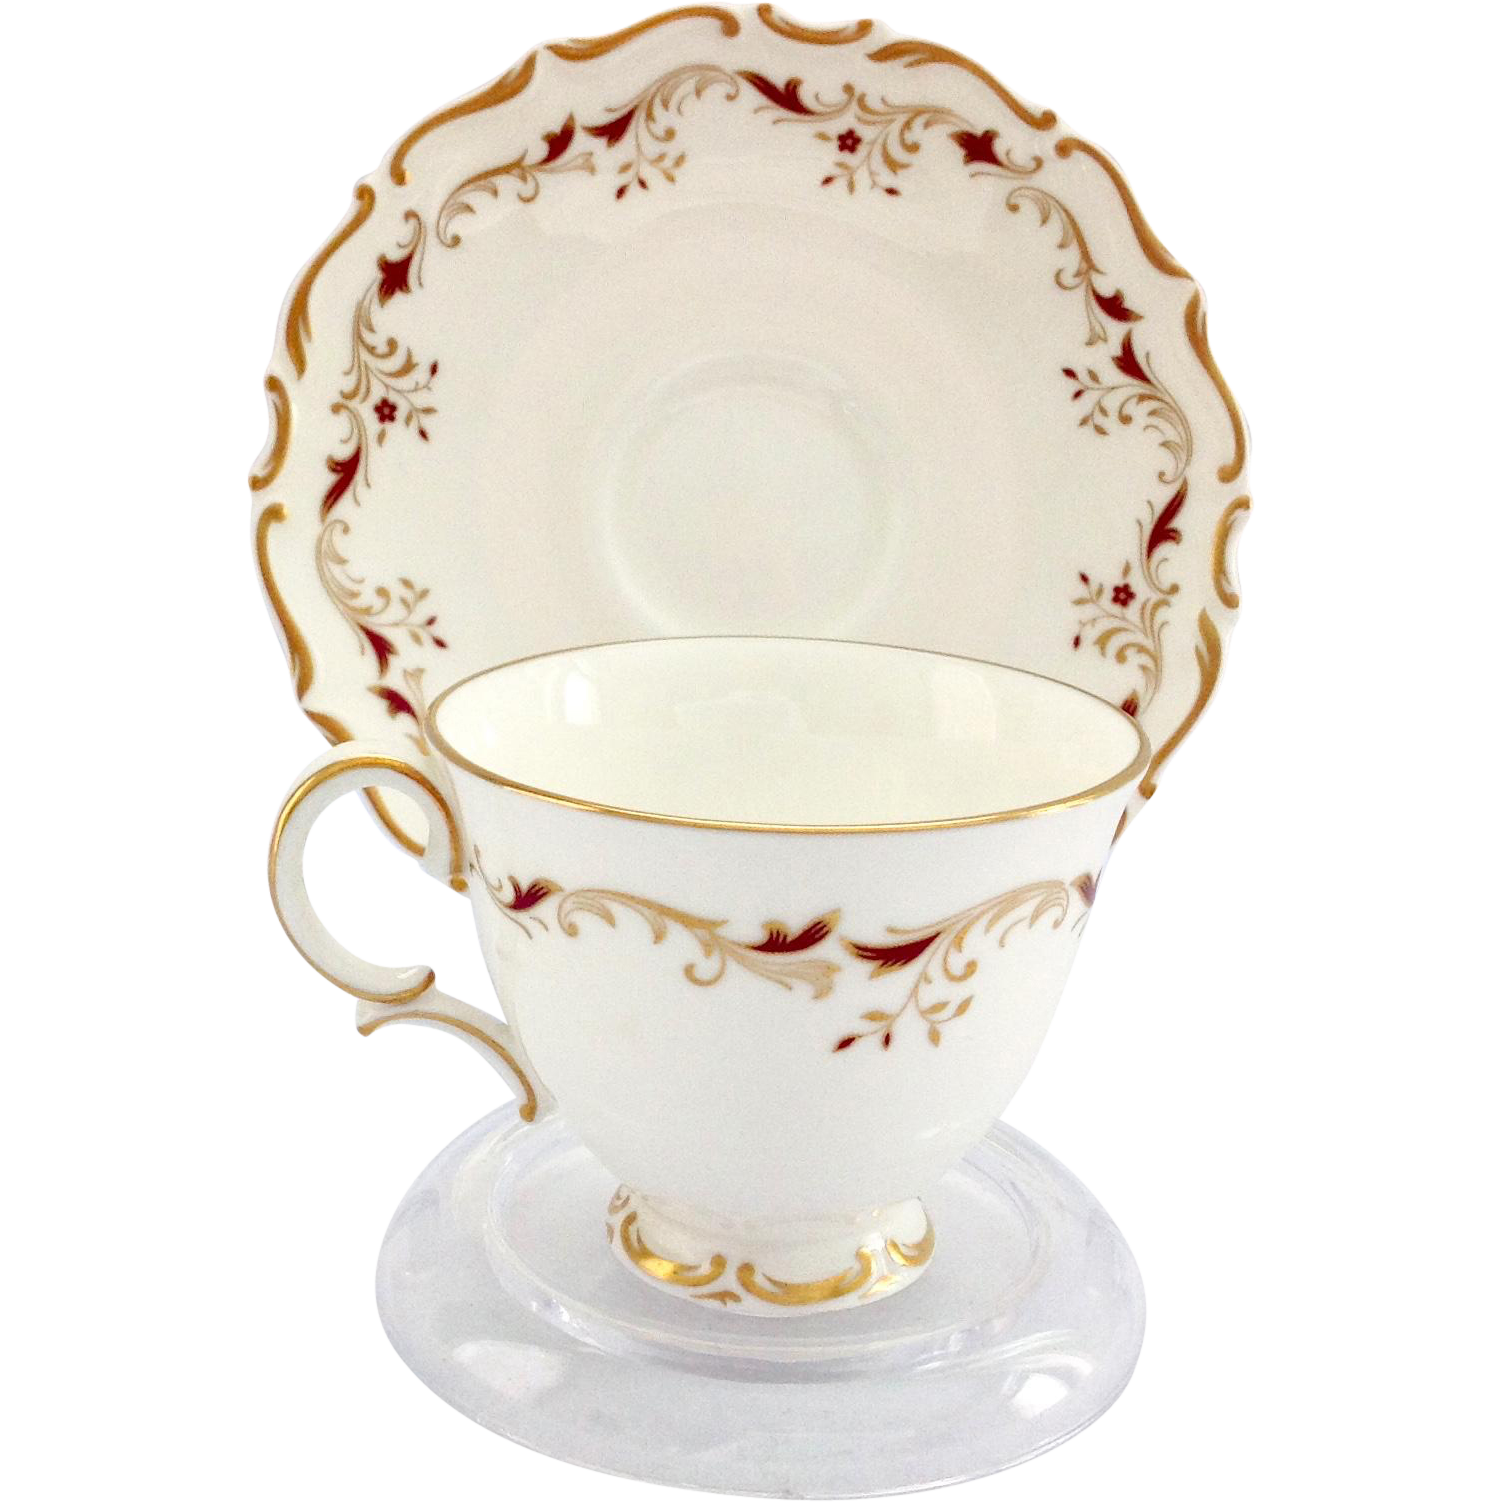 Royal Doulton Strasbourg Gold and Red Scrolls Bone China Demitasse Cup and Saucer